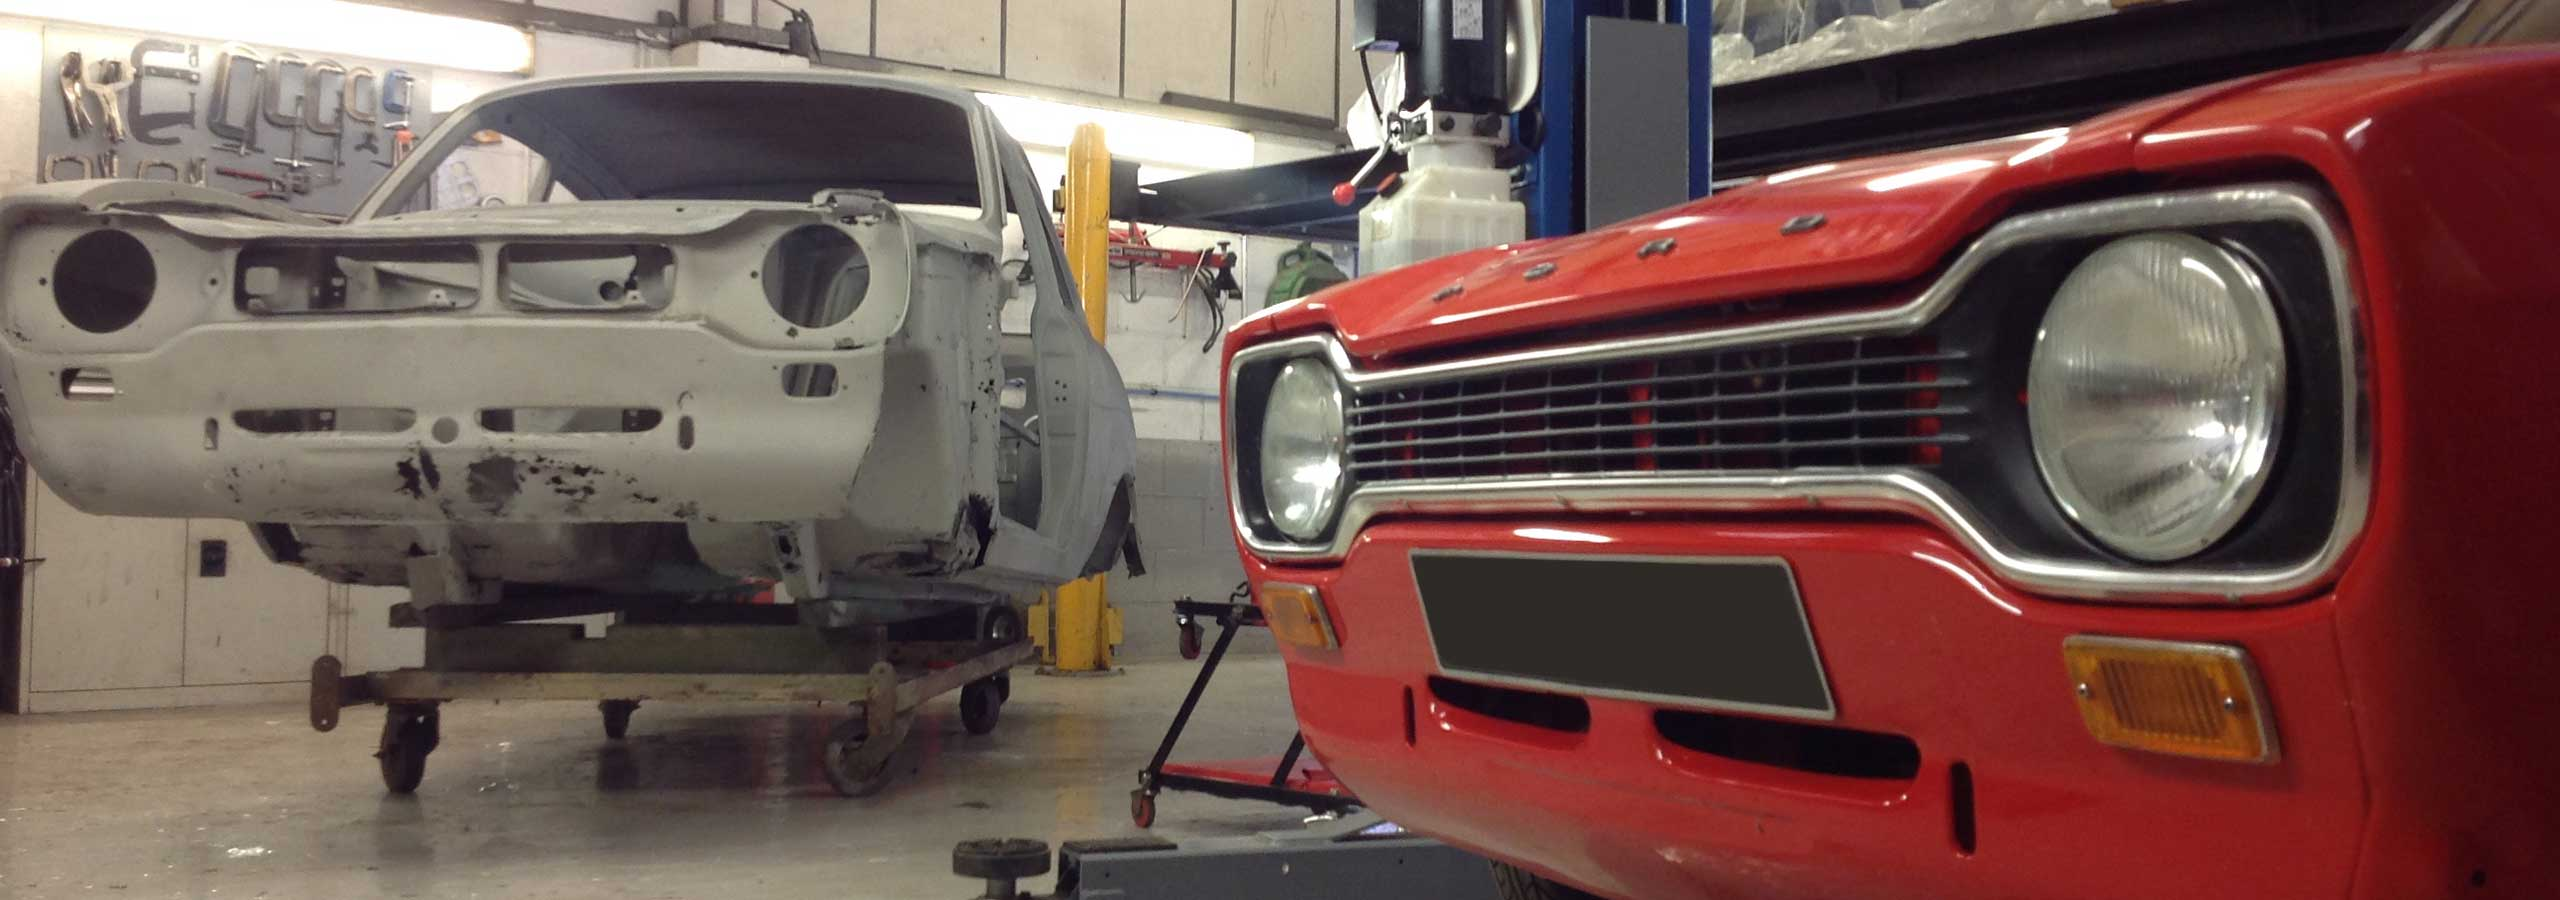 About Classic Car Restoration